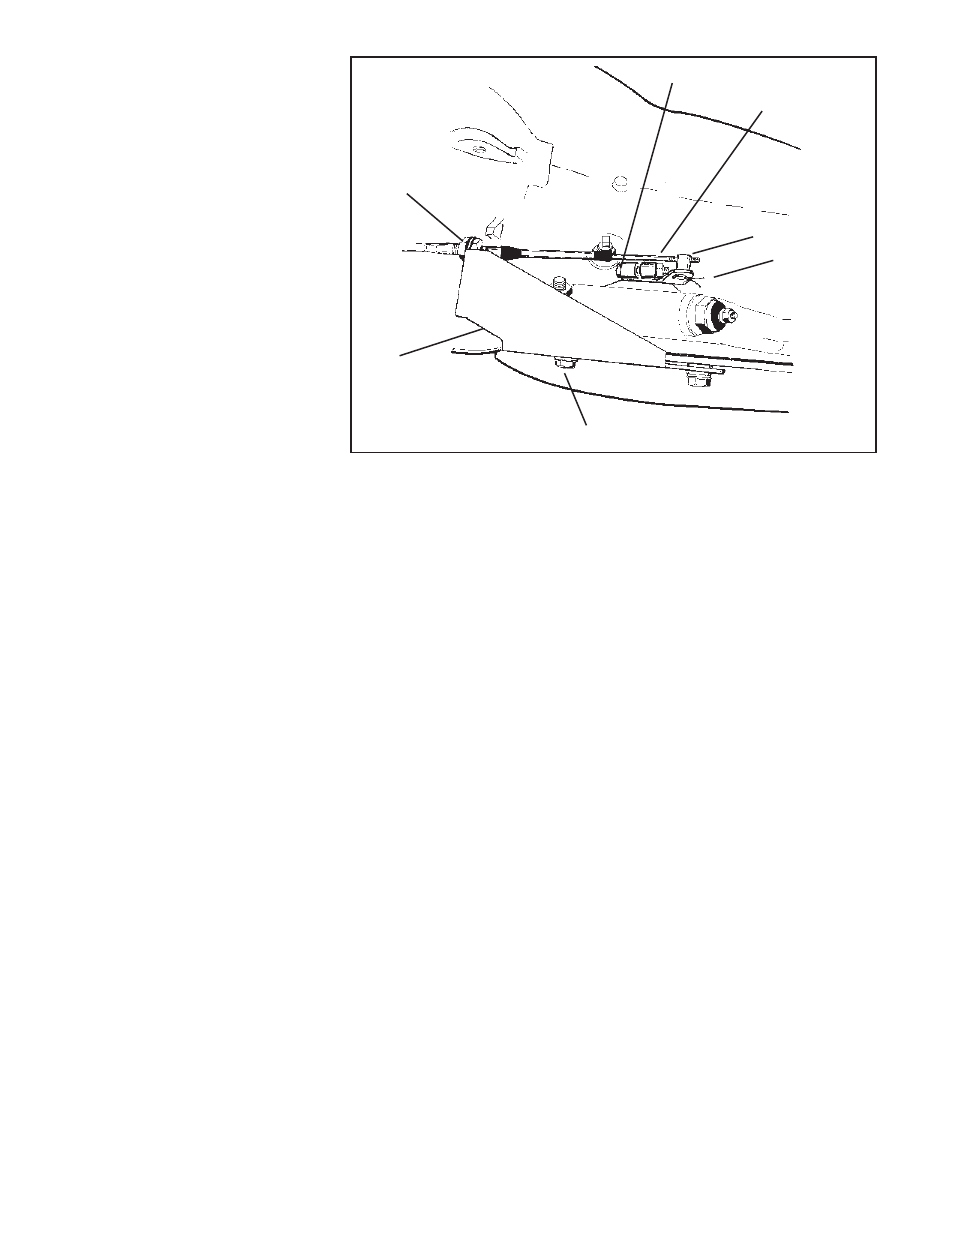 B&M 80683 QUICKSILVER SHIFTER User Manual | Page 5 / 8 on b&m automatic shifters, b&m shifter dimensions, b&m shifter cover, 700r4 shift linkage diagram, b&m quicksilver shifter, hurst shifter wiring diagram, b&m shifter parts, nissan manual transmission diagram, b&m shifter installation,